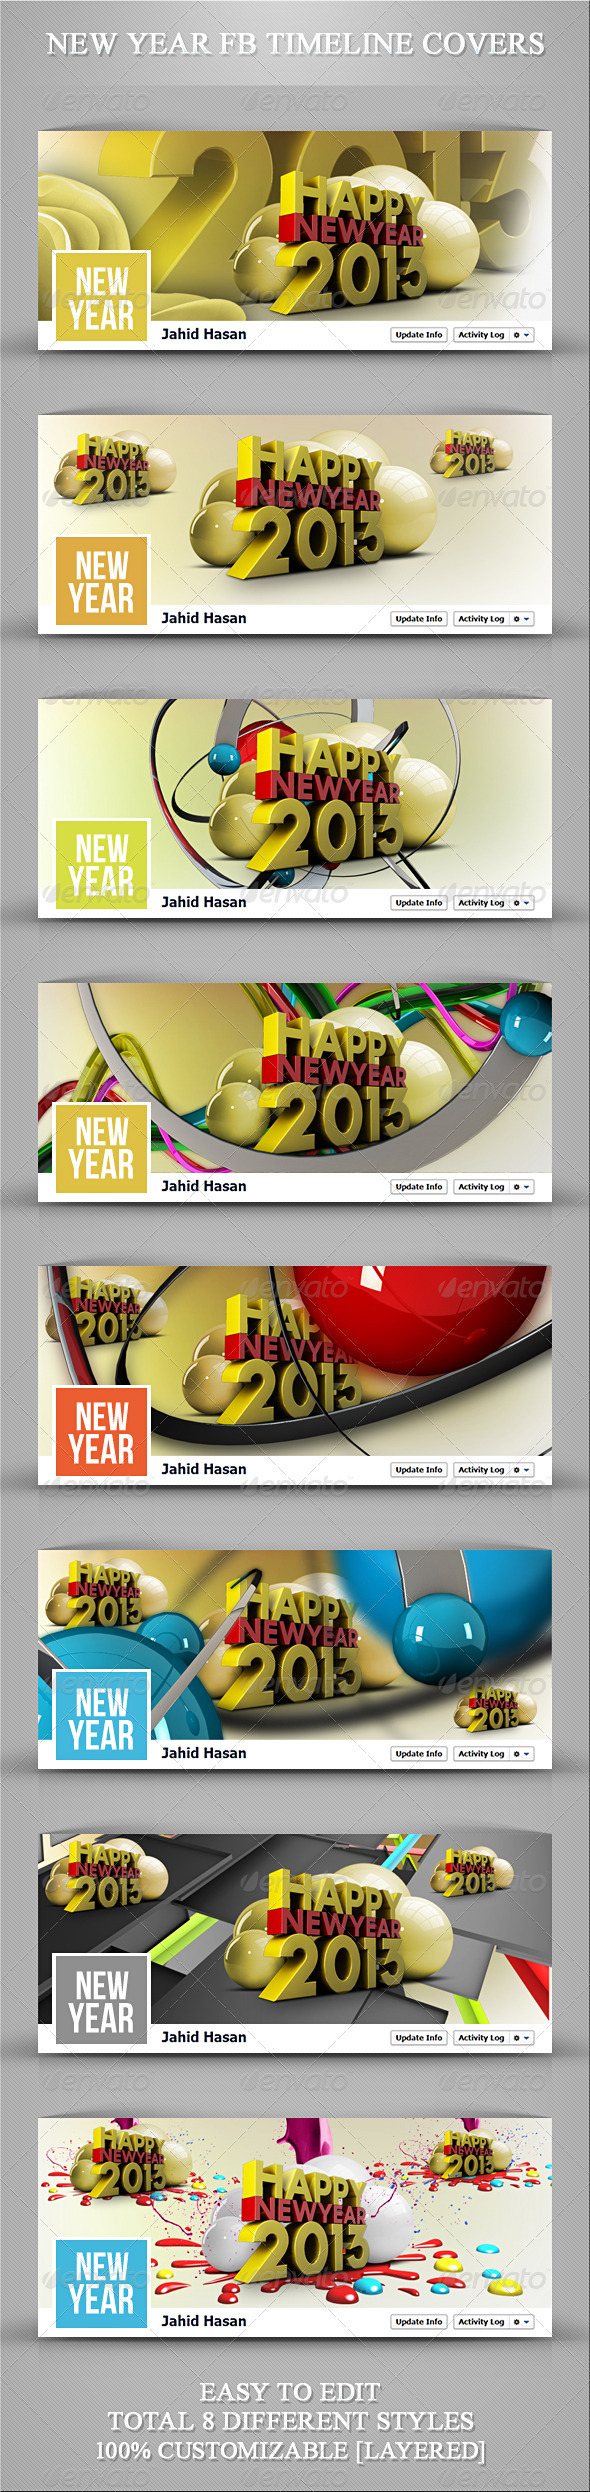 GraphicRiver New Year FB Timeline Covers 3548585